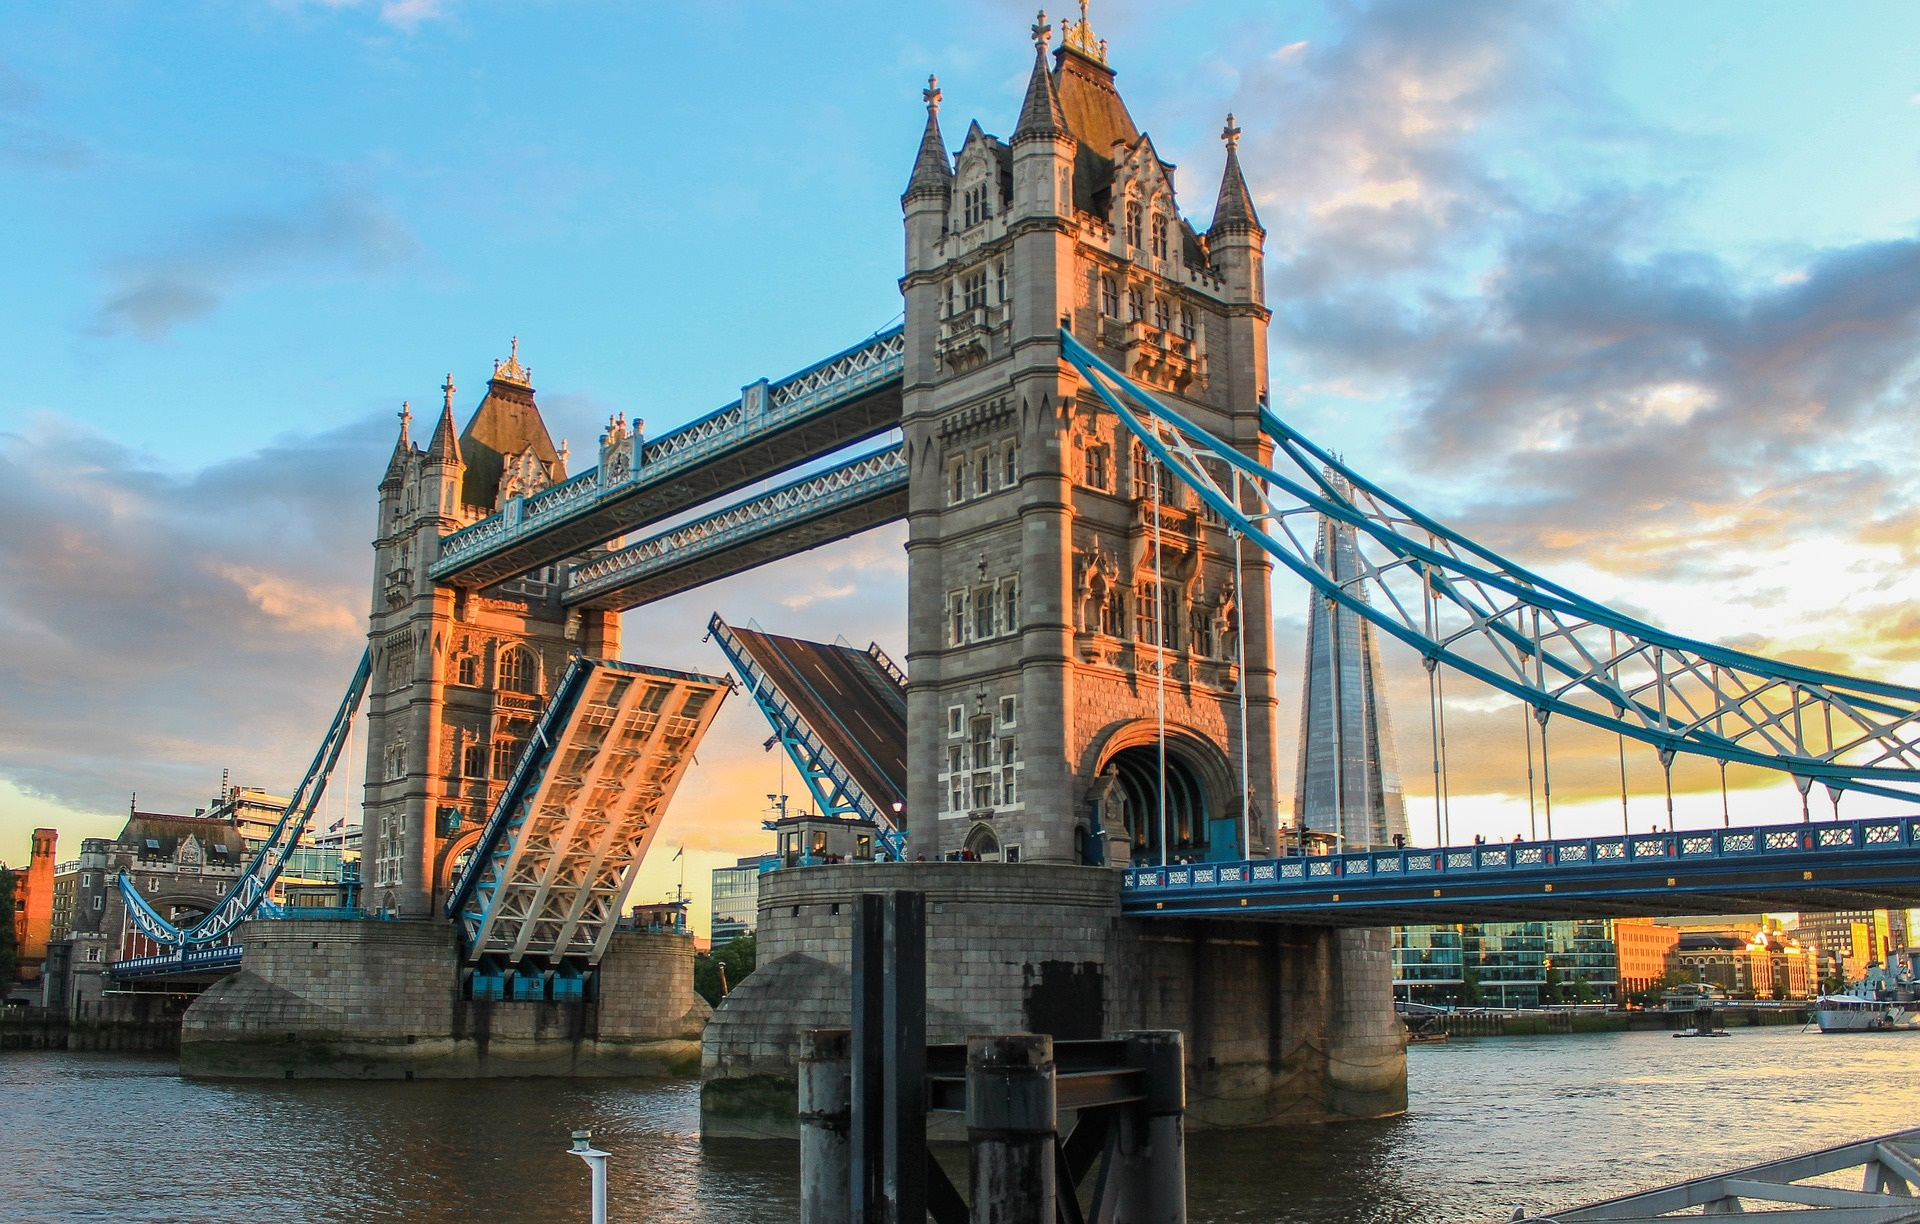 Top sights in Central London - Tower Bridge